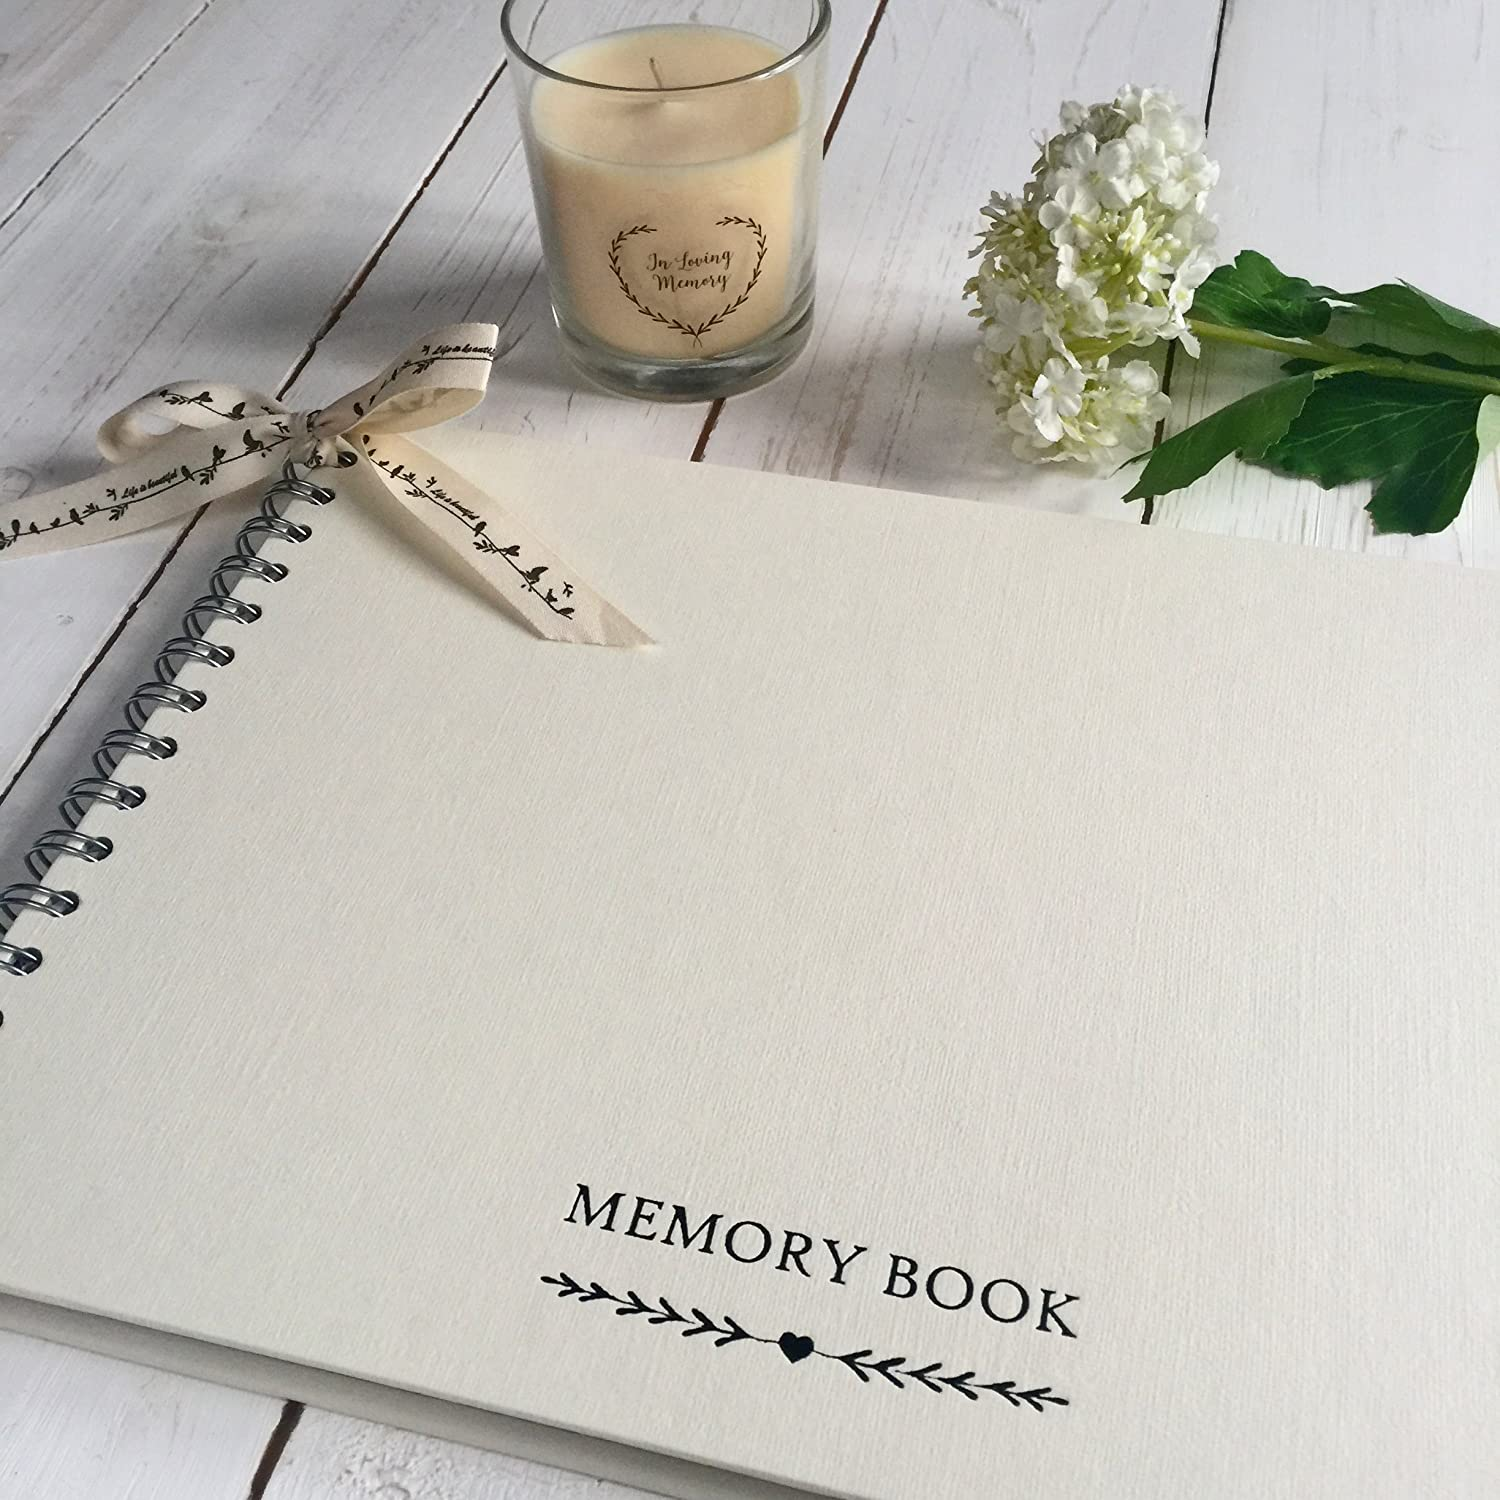 Angel & Dove A4 Memory Book for Funeral, Remembrance, Condolence, Celebration of Life